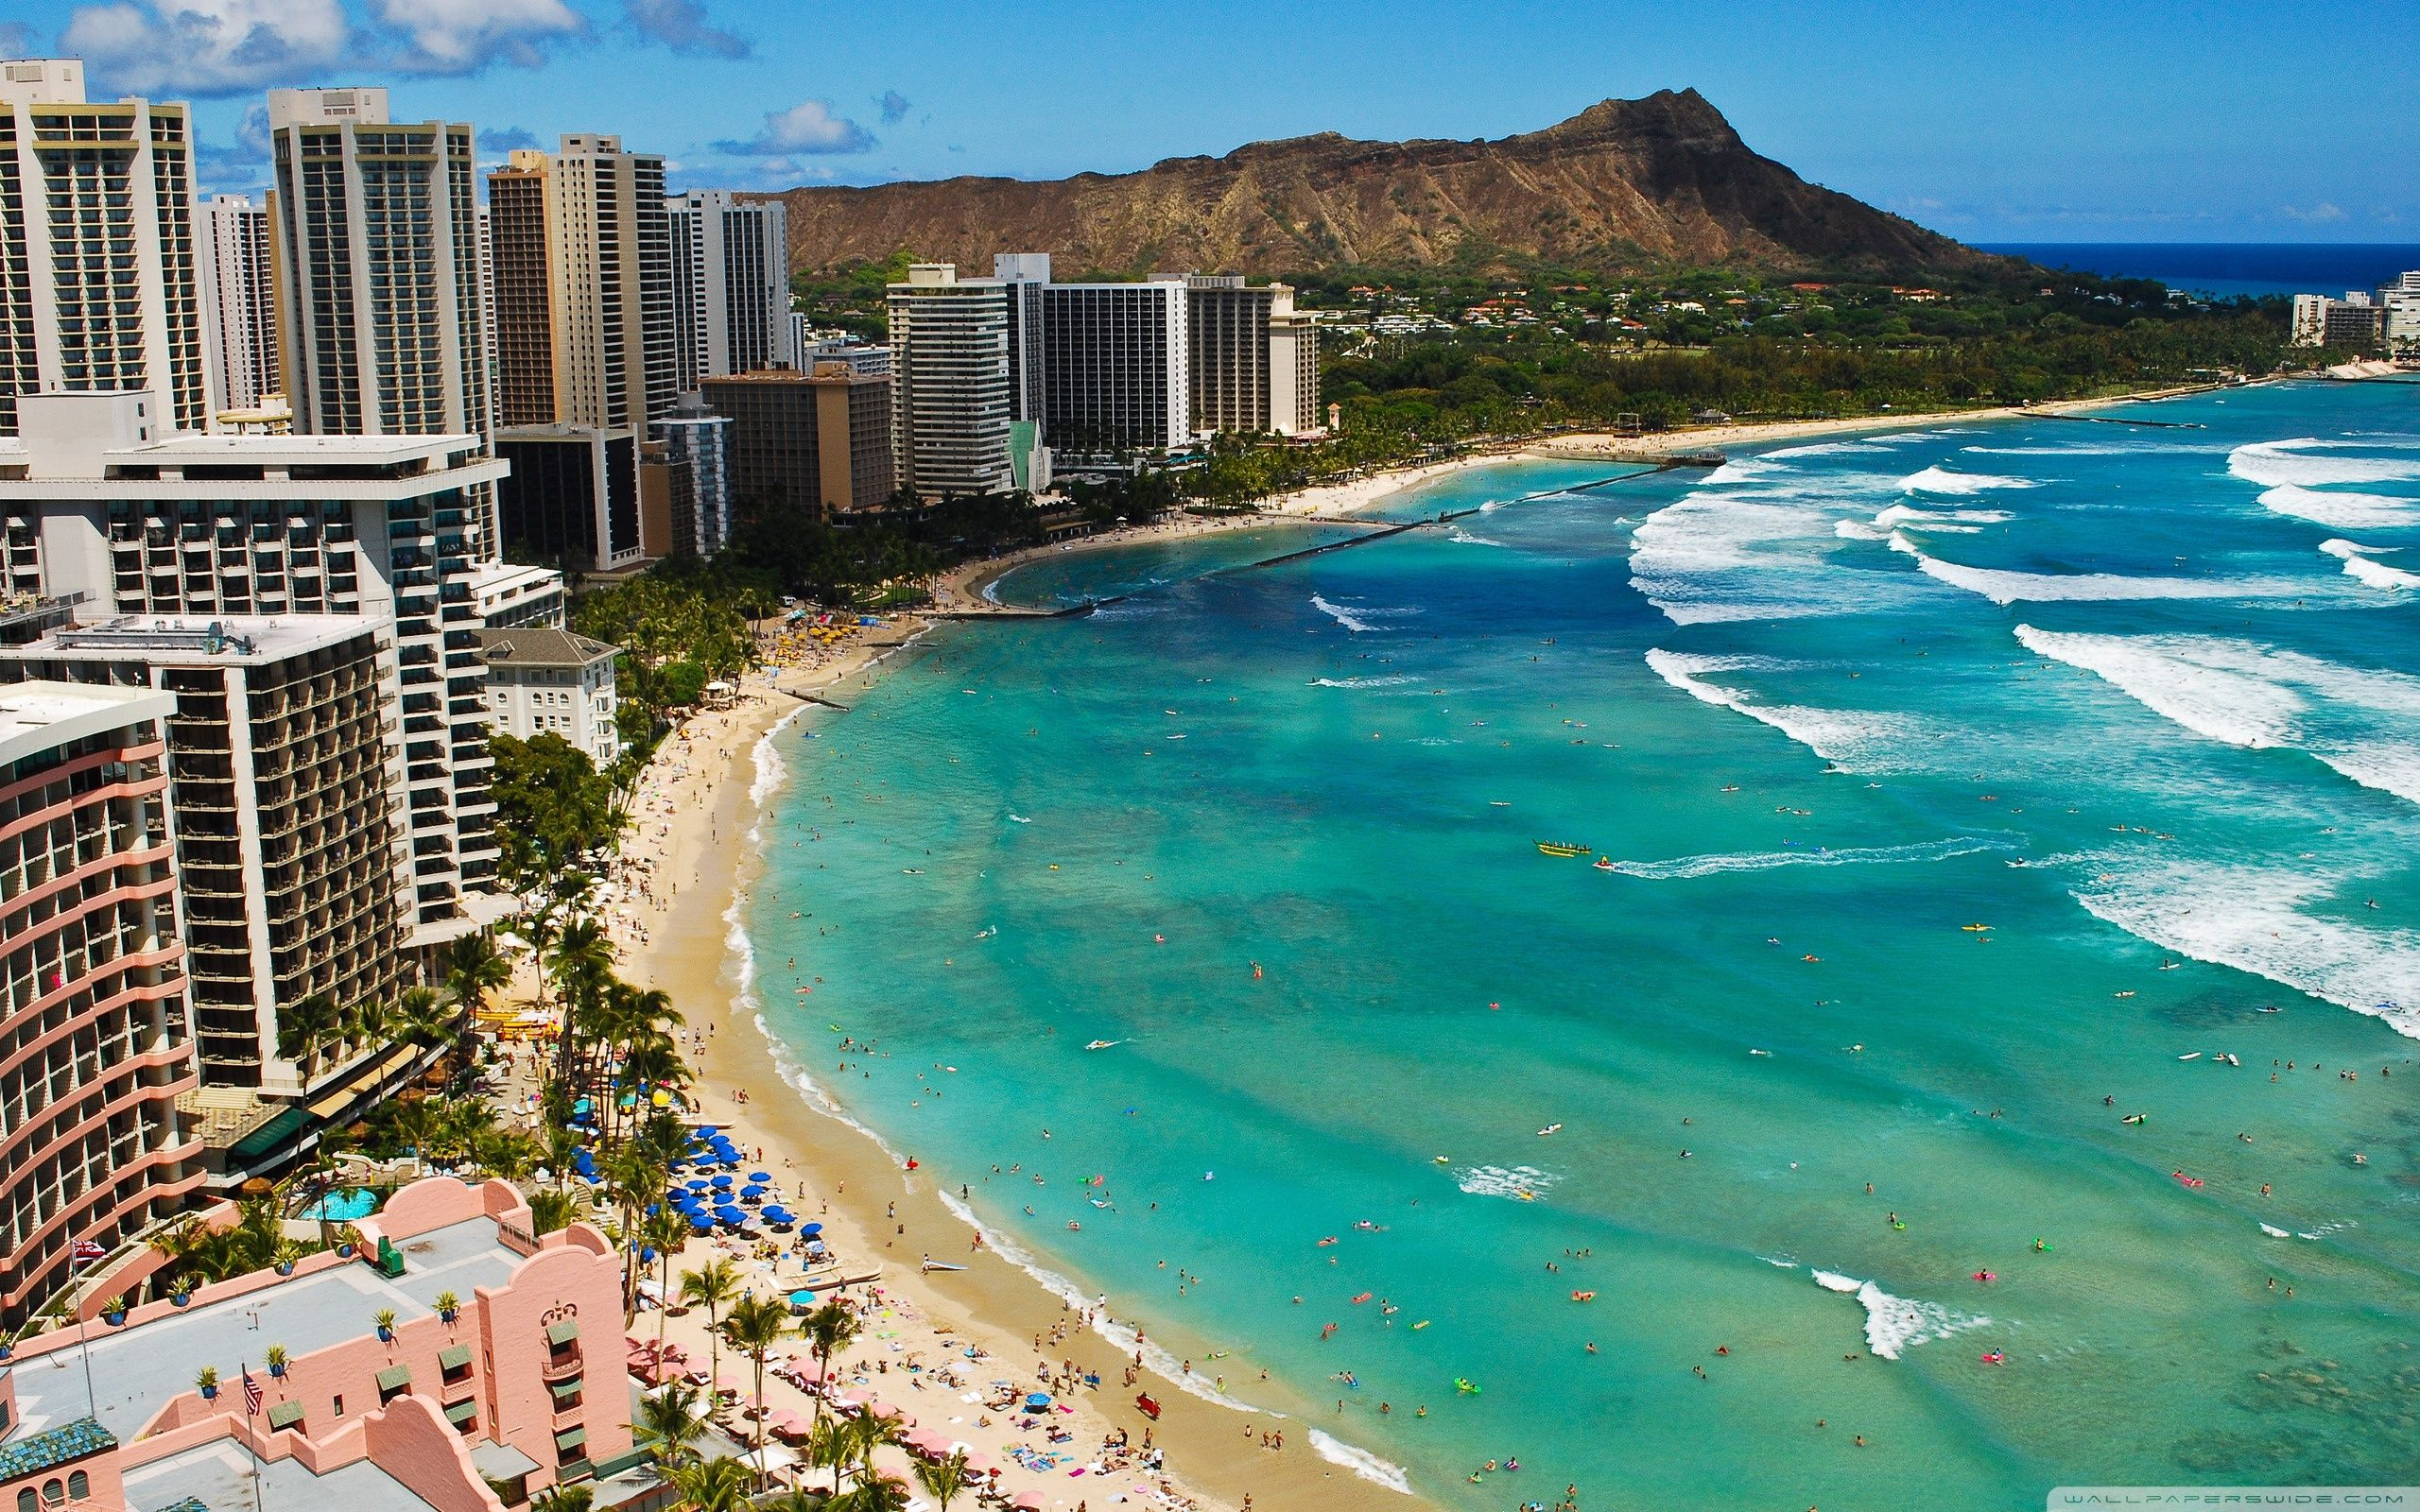 65 Waikiki Beach Desktop Wallpapers   Download at WallpaperBro 2560x1600